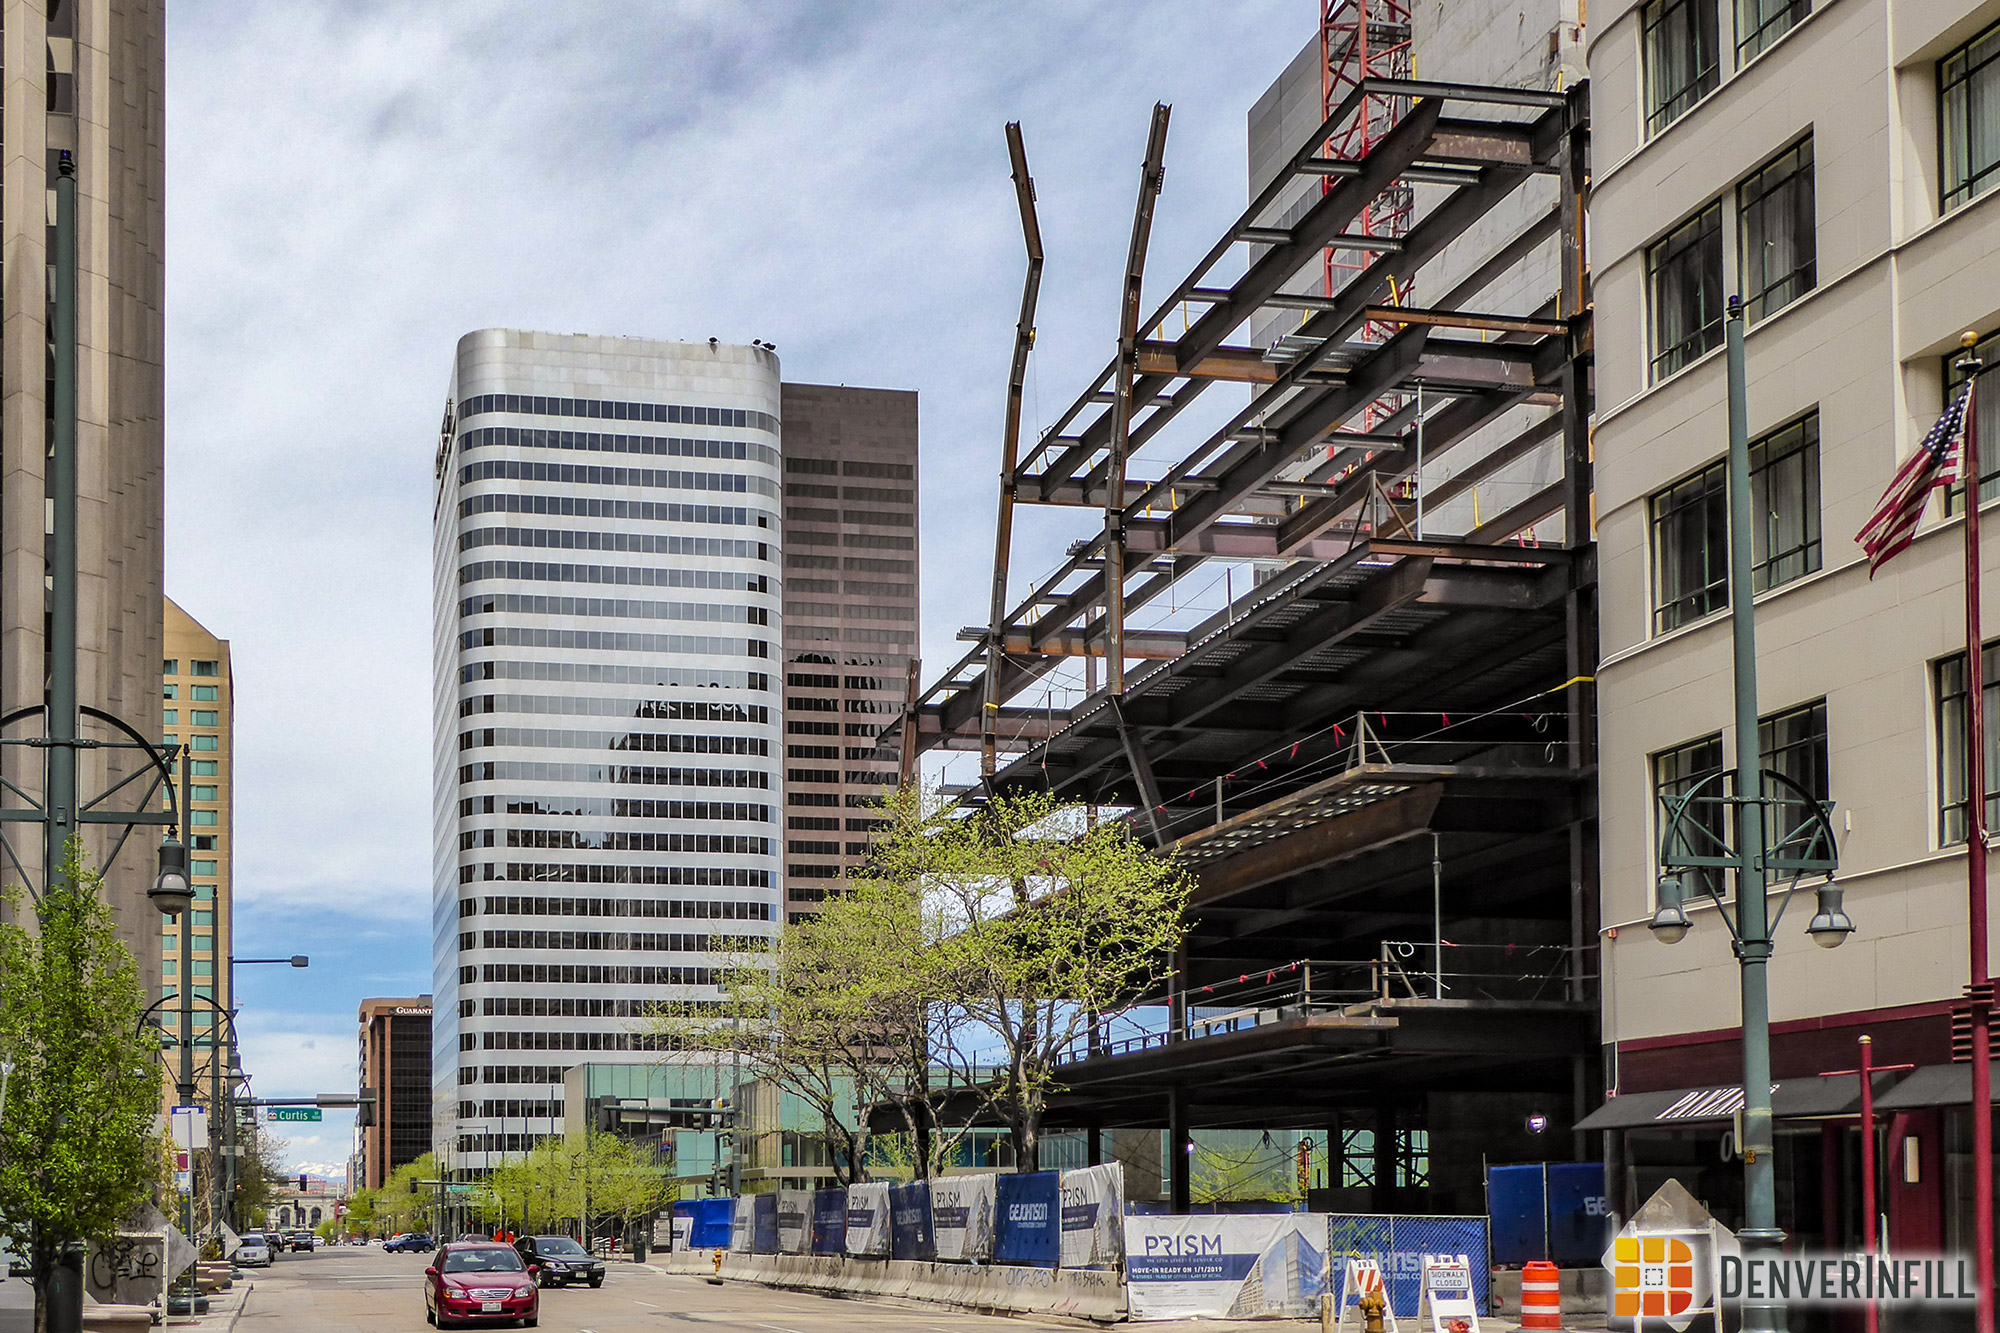 View from 17th and Champa of Prism under construction, April 2018